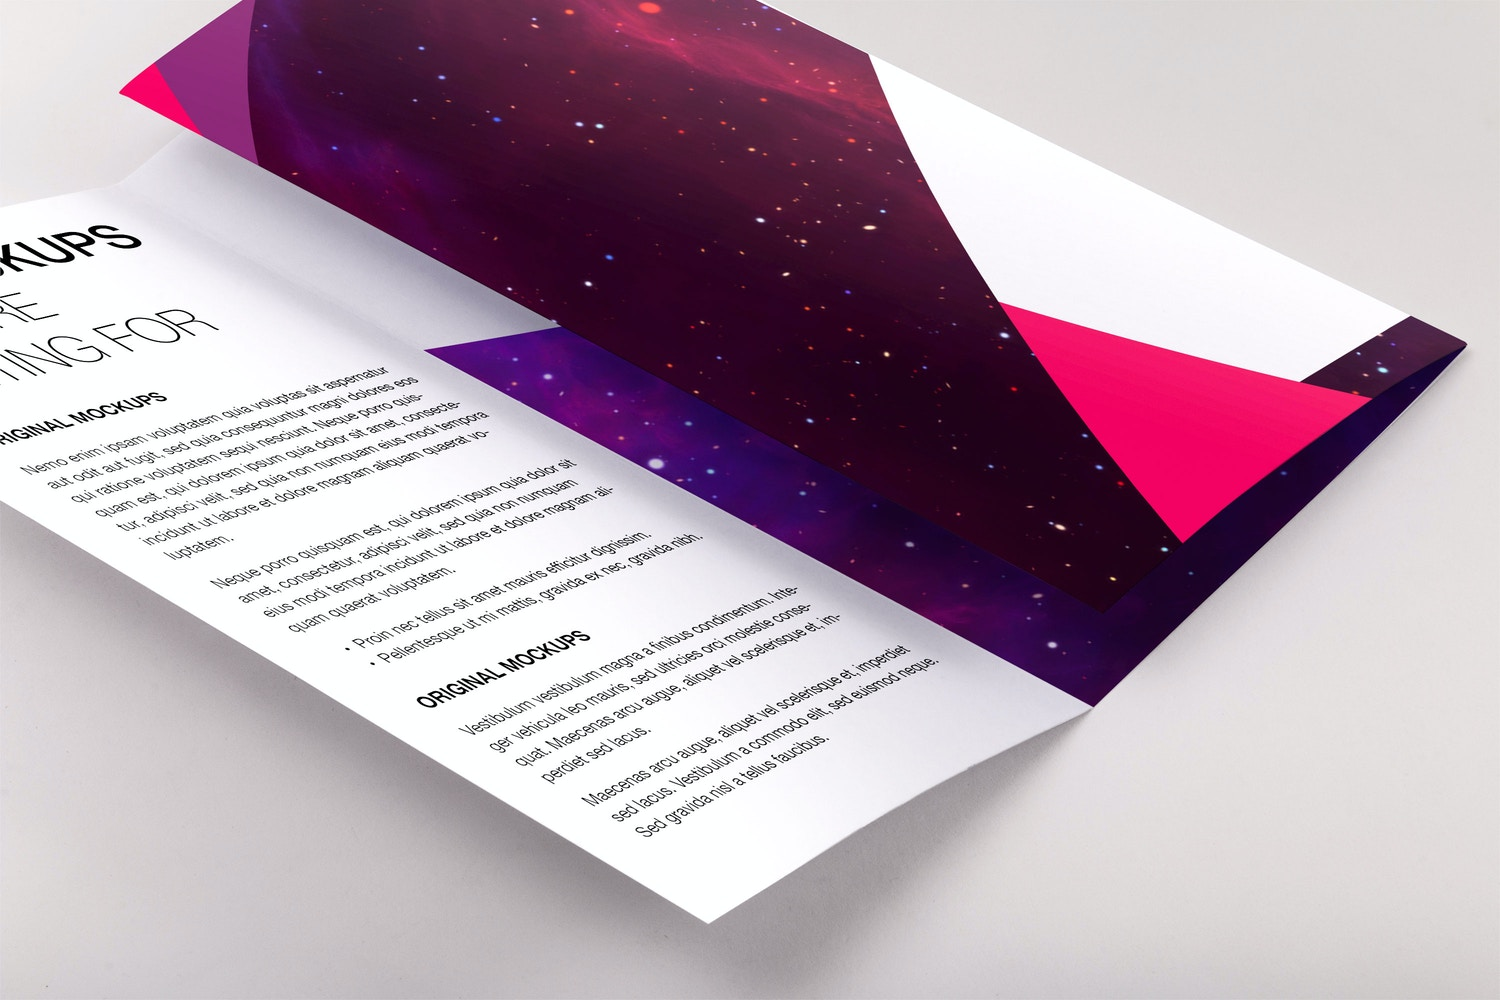 Legal Trifold Brochure PSD Mockup 01 by Original Mockups on Original Mockups